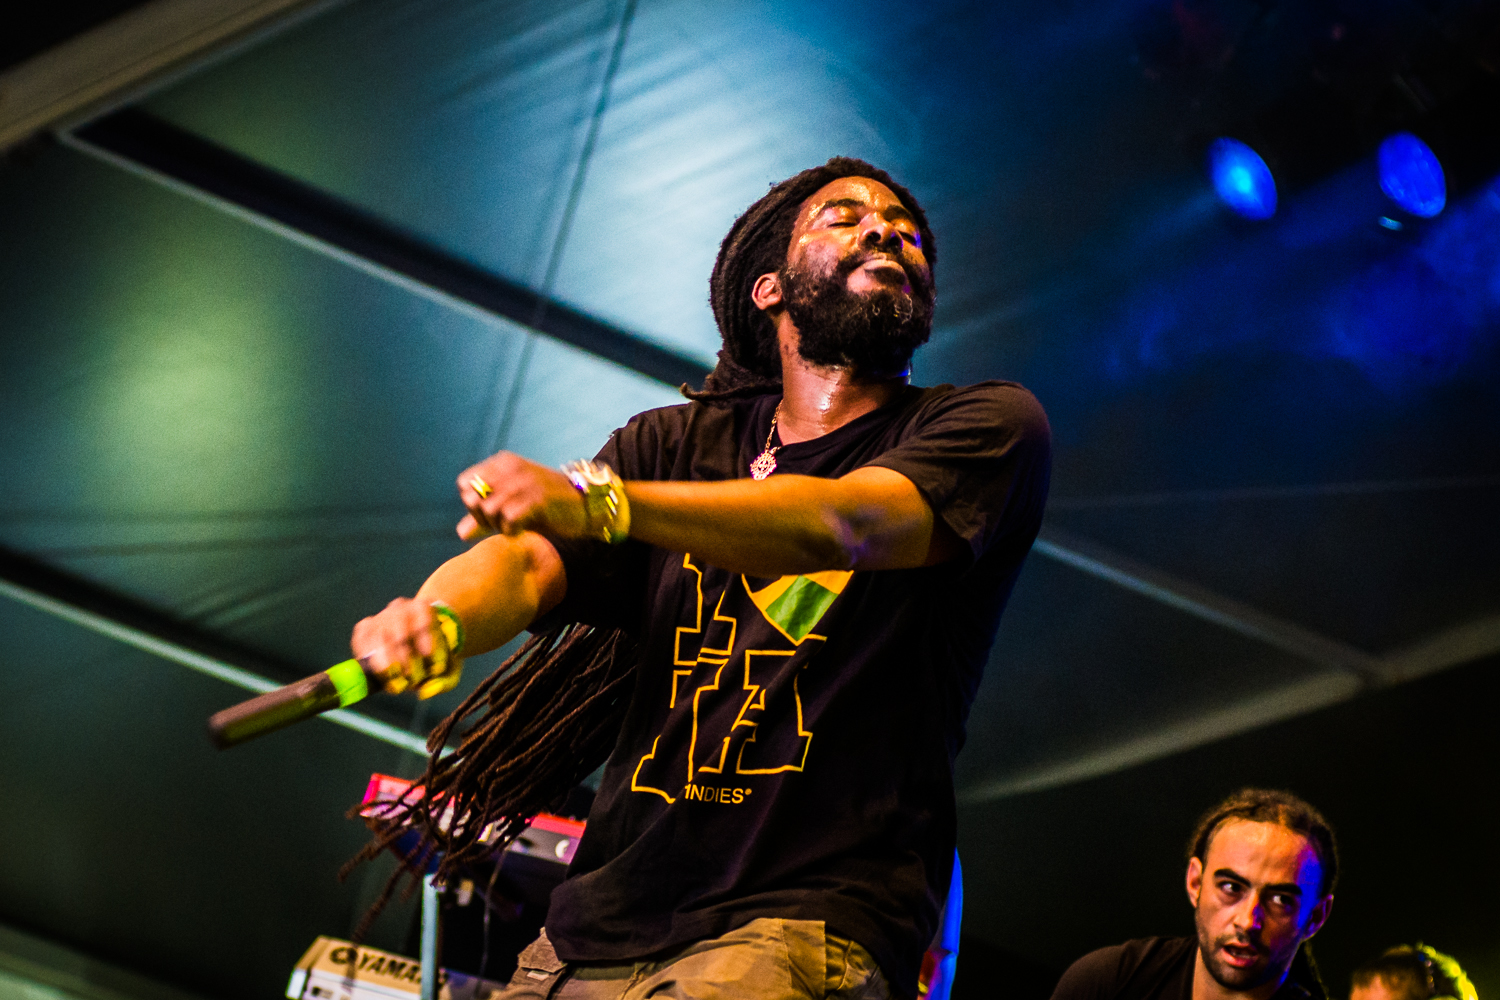 Omar Perry @ Afro-Latino Festival 2016 (© Timmy Haubrechts)